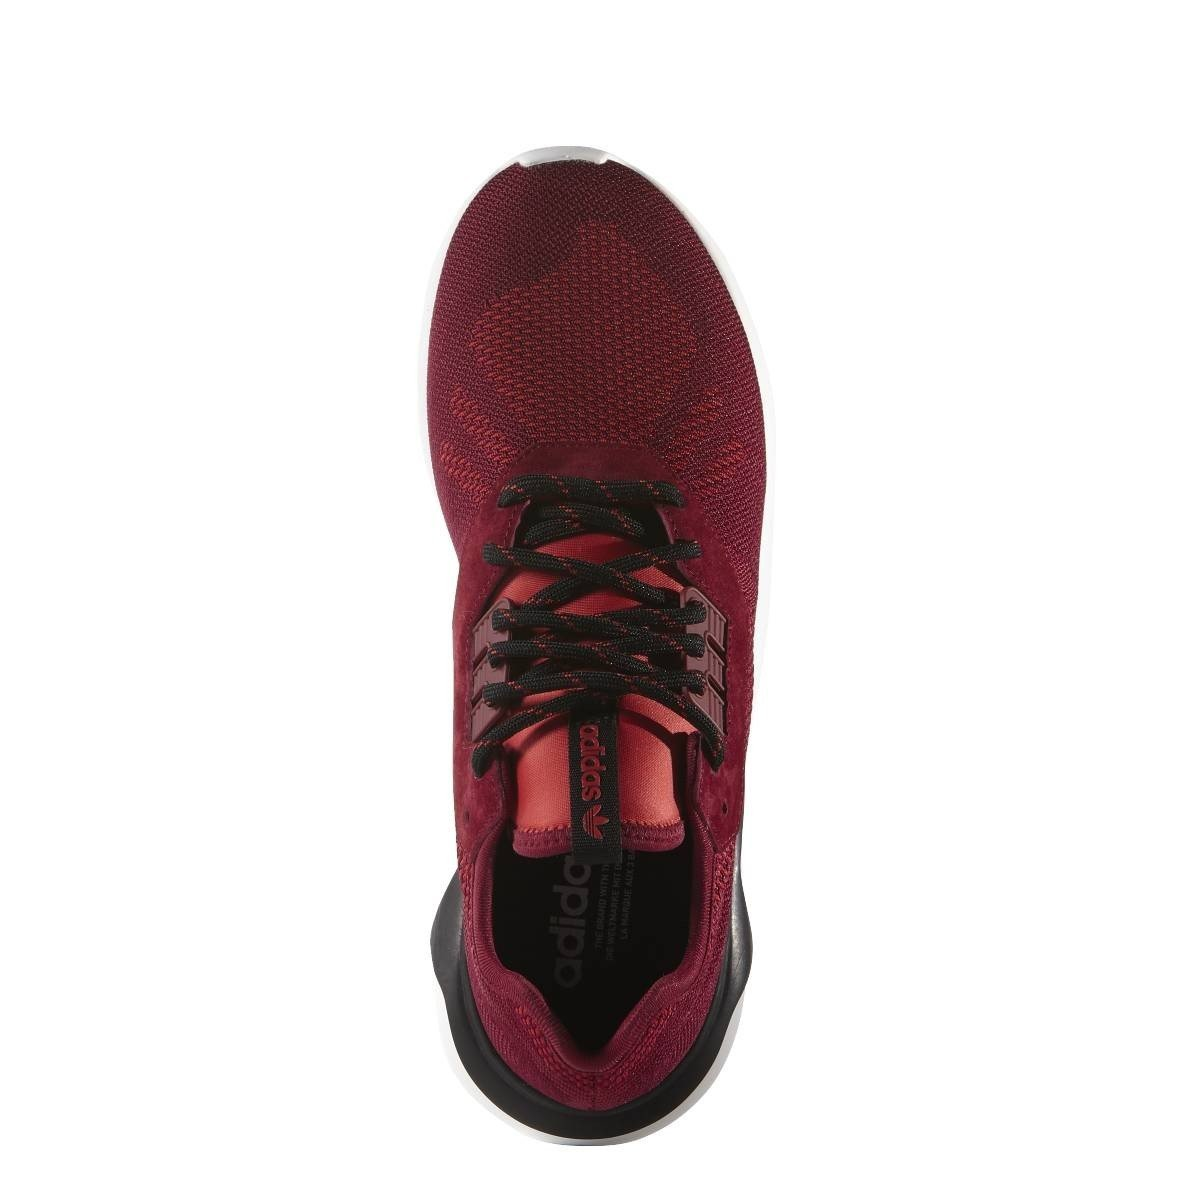 promo code f8bc2 17877 Adidas Tubular Runner Weave Sneaker, red, 42  Amazon.co.uk  Sports    Outdoors